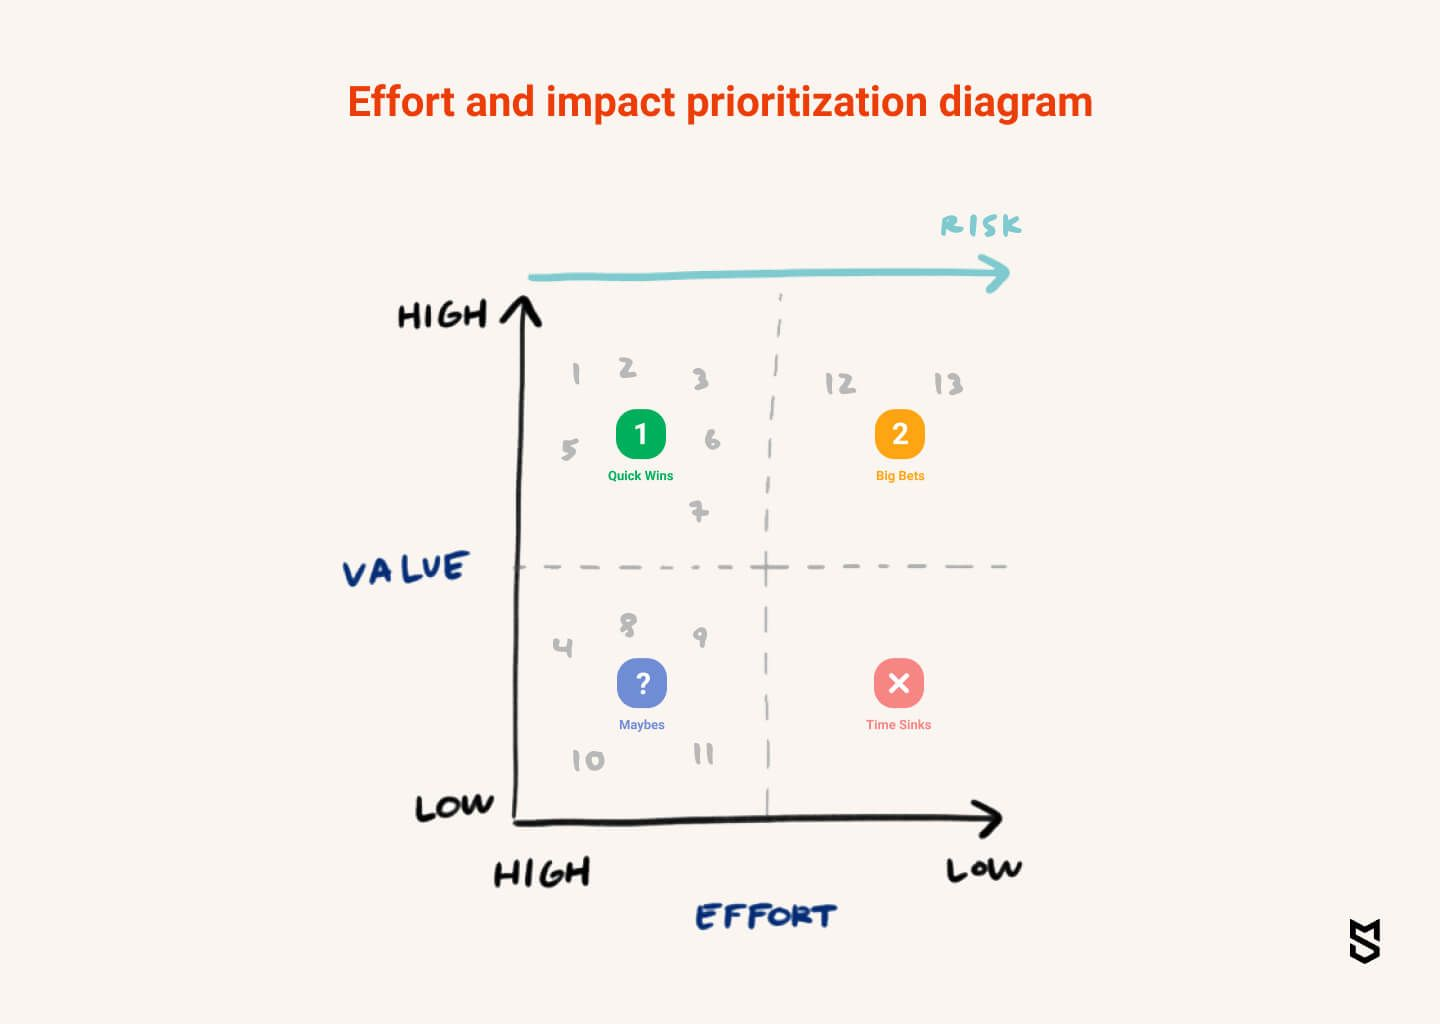 Effort and impact prioritization diagram